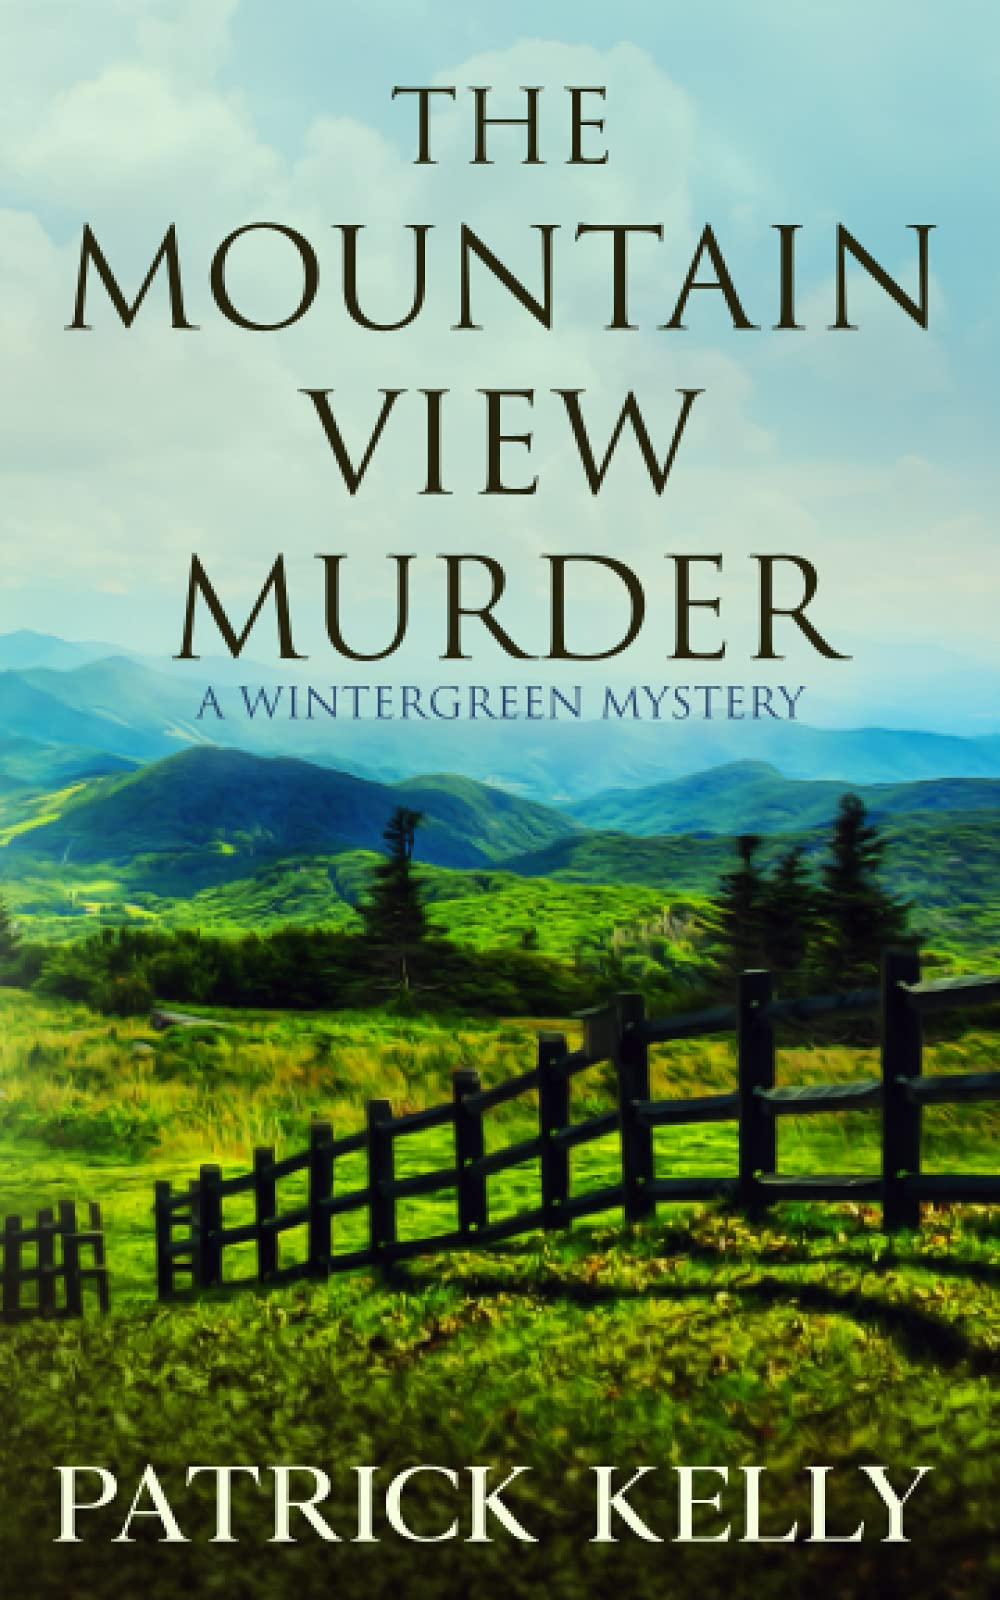 The Mountain View Murder